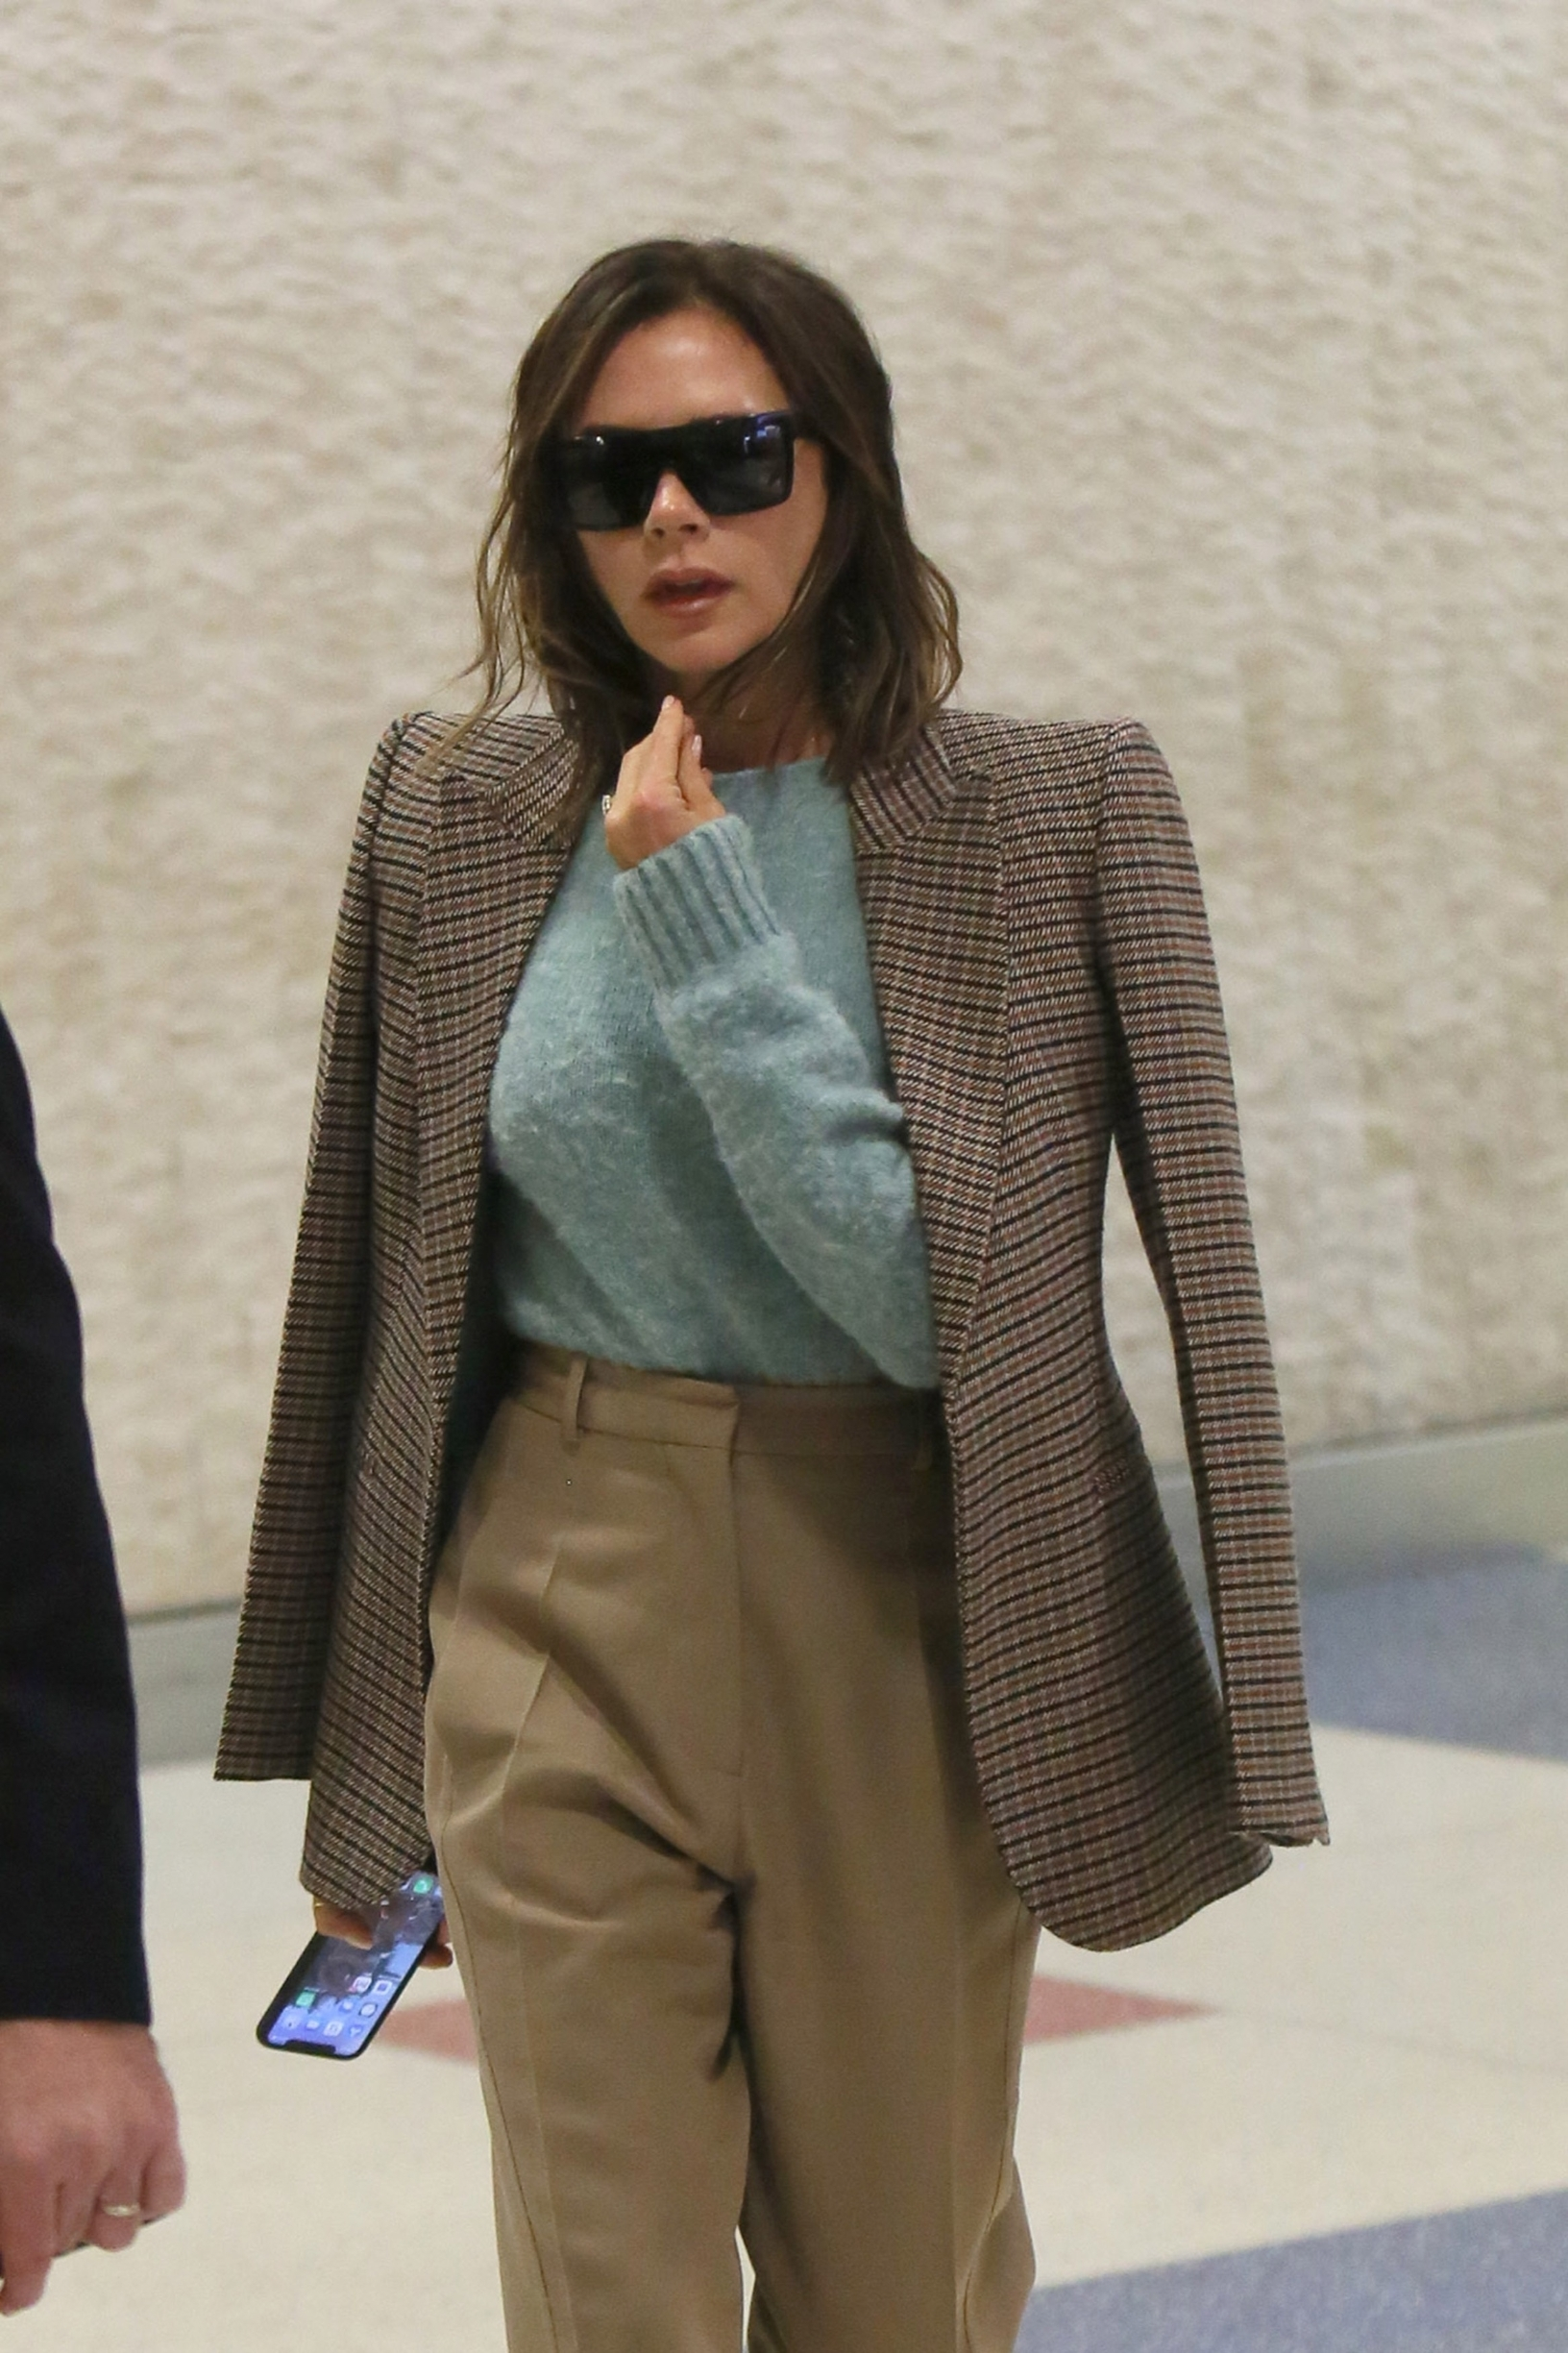 New York city, NY  - Victoria Beckham touches down in New York with a flight at JFK airport, wearing a brown plaid blazer, a green sweater and tan slacks with popping yellow heels.  BACKGRID USA 14 OCTOBER 2019, Image: 476761898, License: Rights-managed, Restrictions: , Model Release: no, Credit line: T.JACKSON / BACKGRID / Backgrid USA / Profimedia